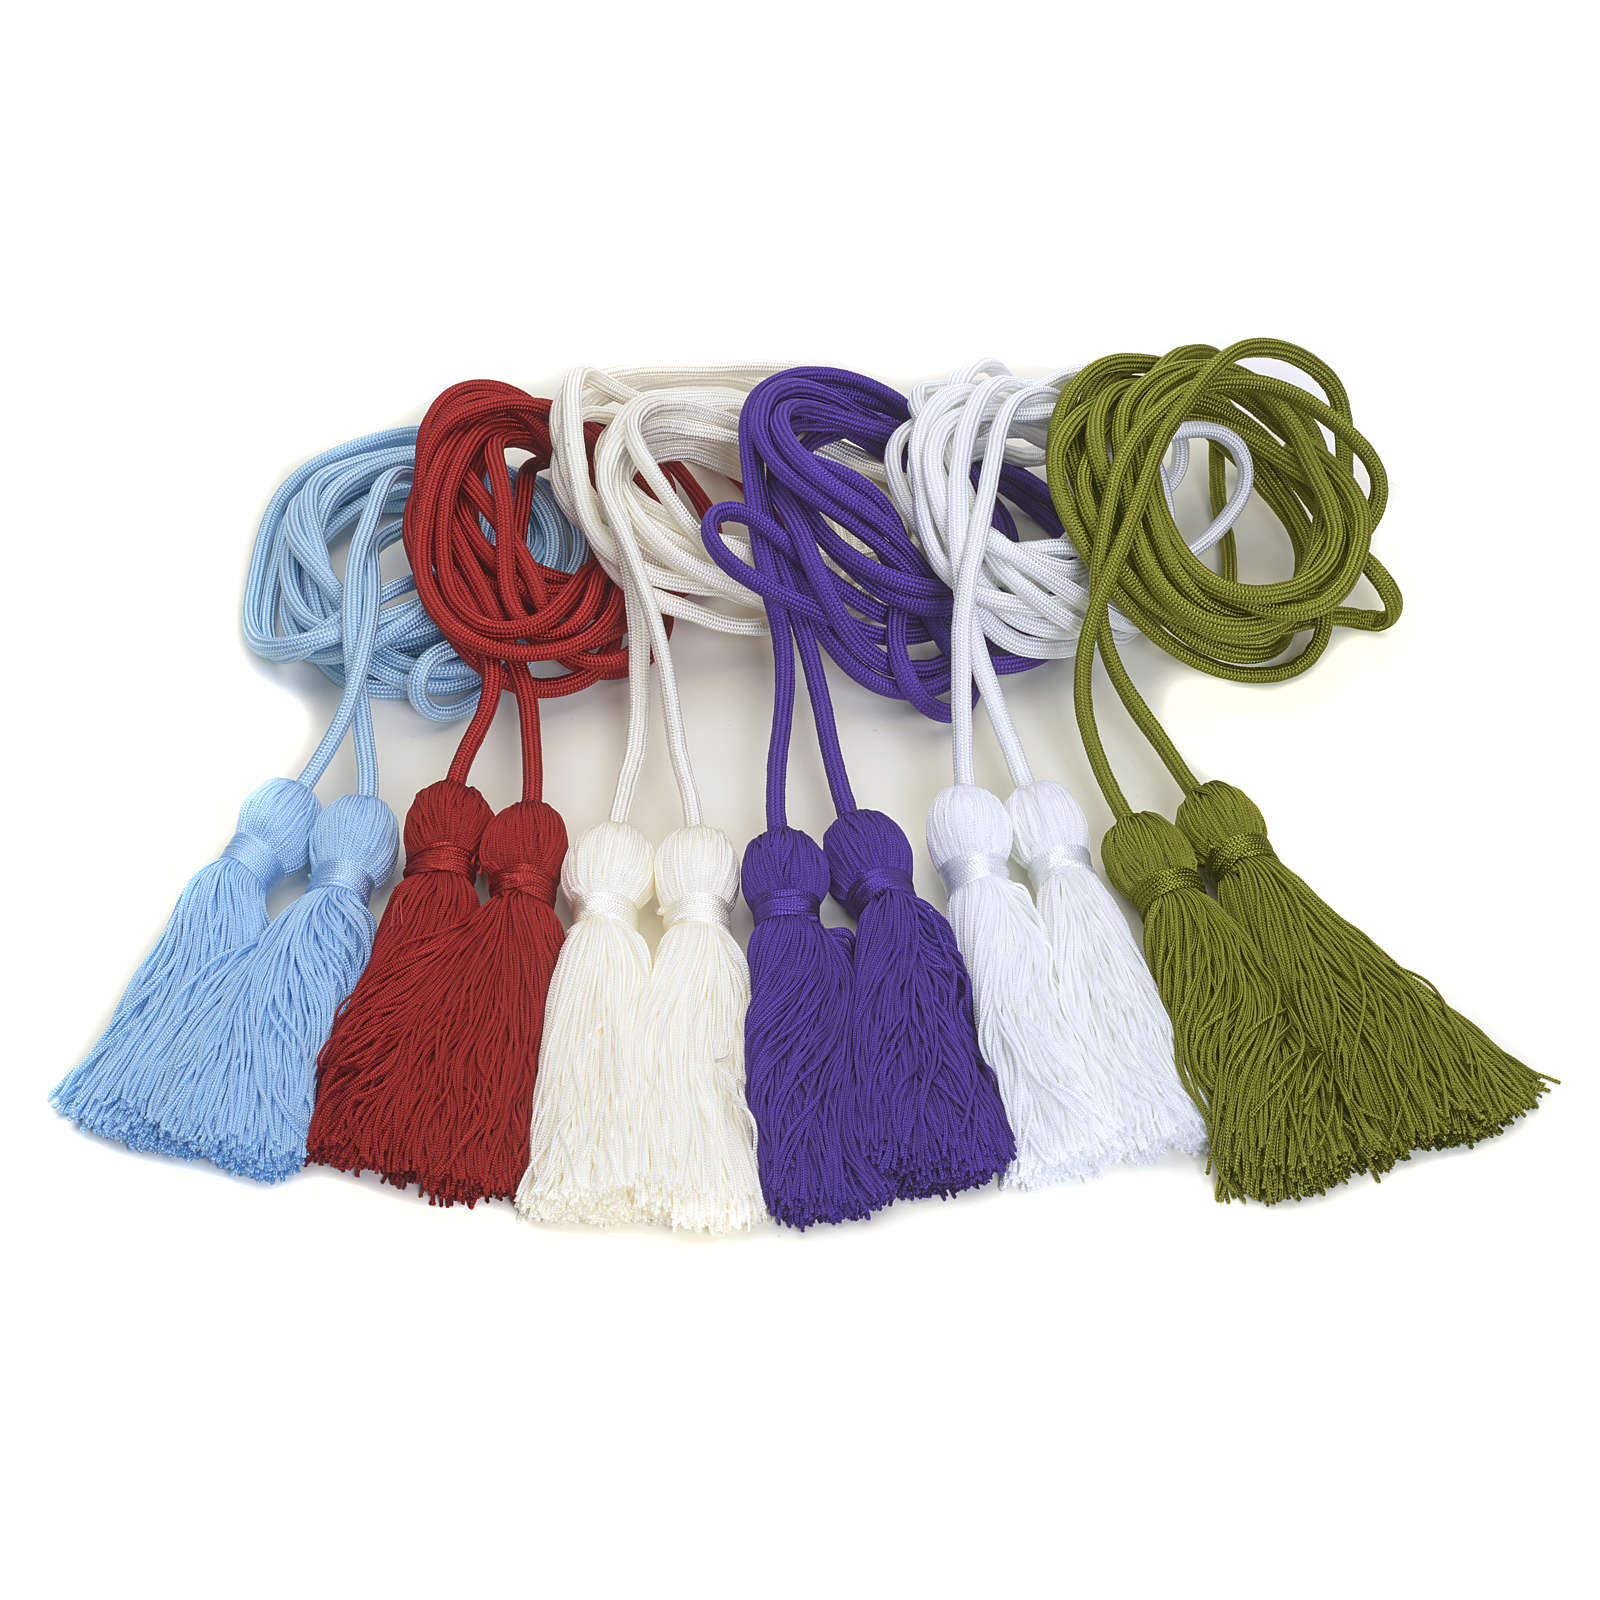 Cincture for alb in various colors 4